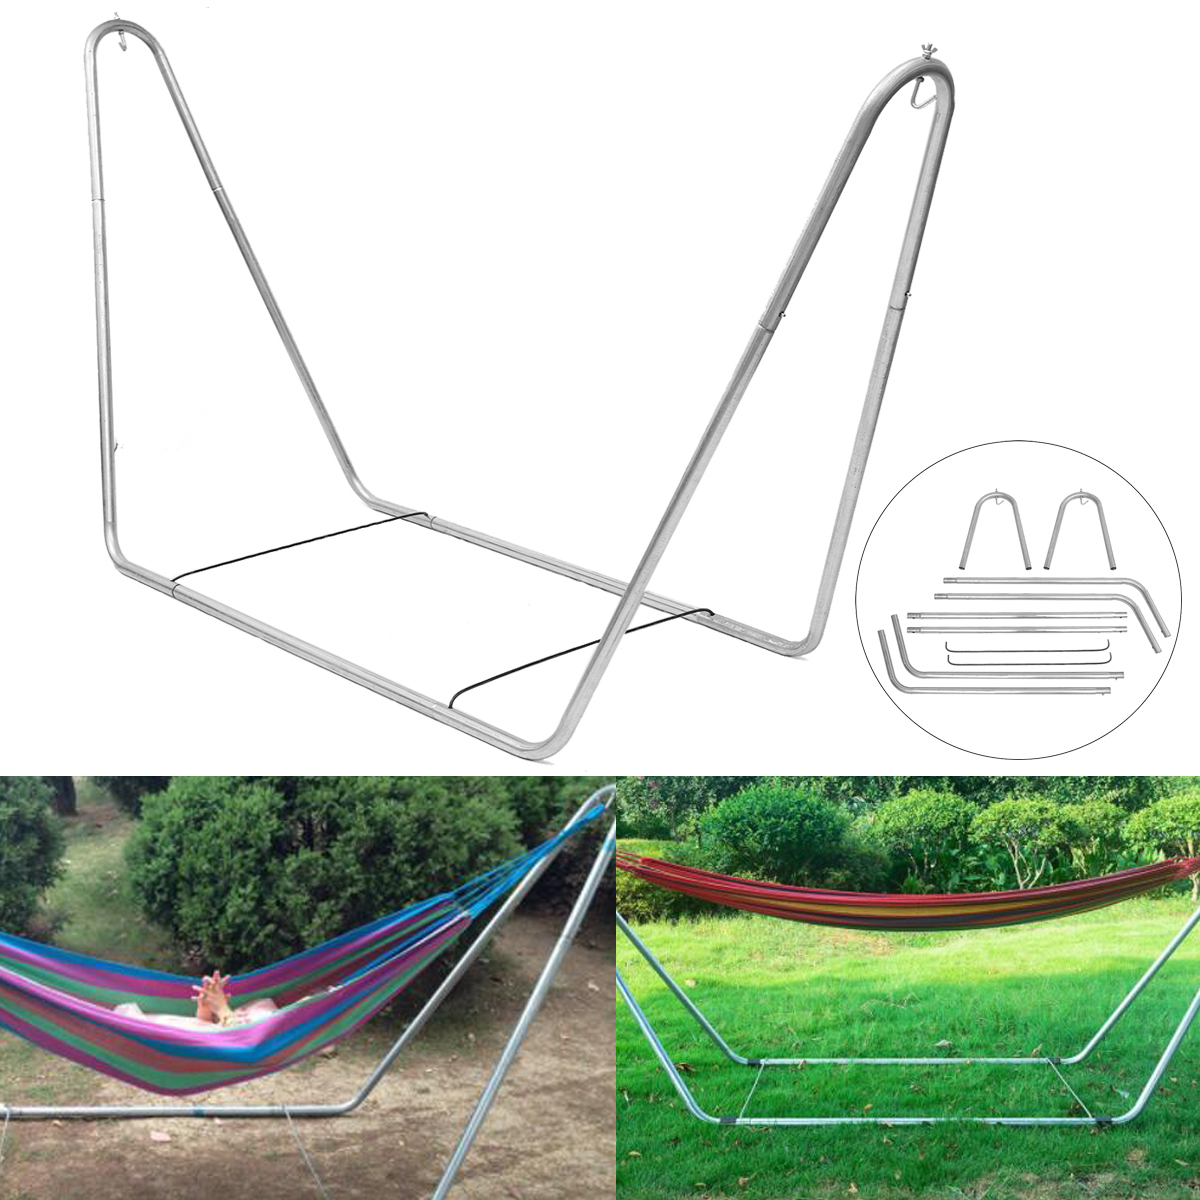 Portable Hammock Steel Stand Camping Outdoor Travel Swing Chair Bed Hammock Frame Stand Stand Only s1000rr turn led lights